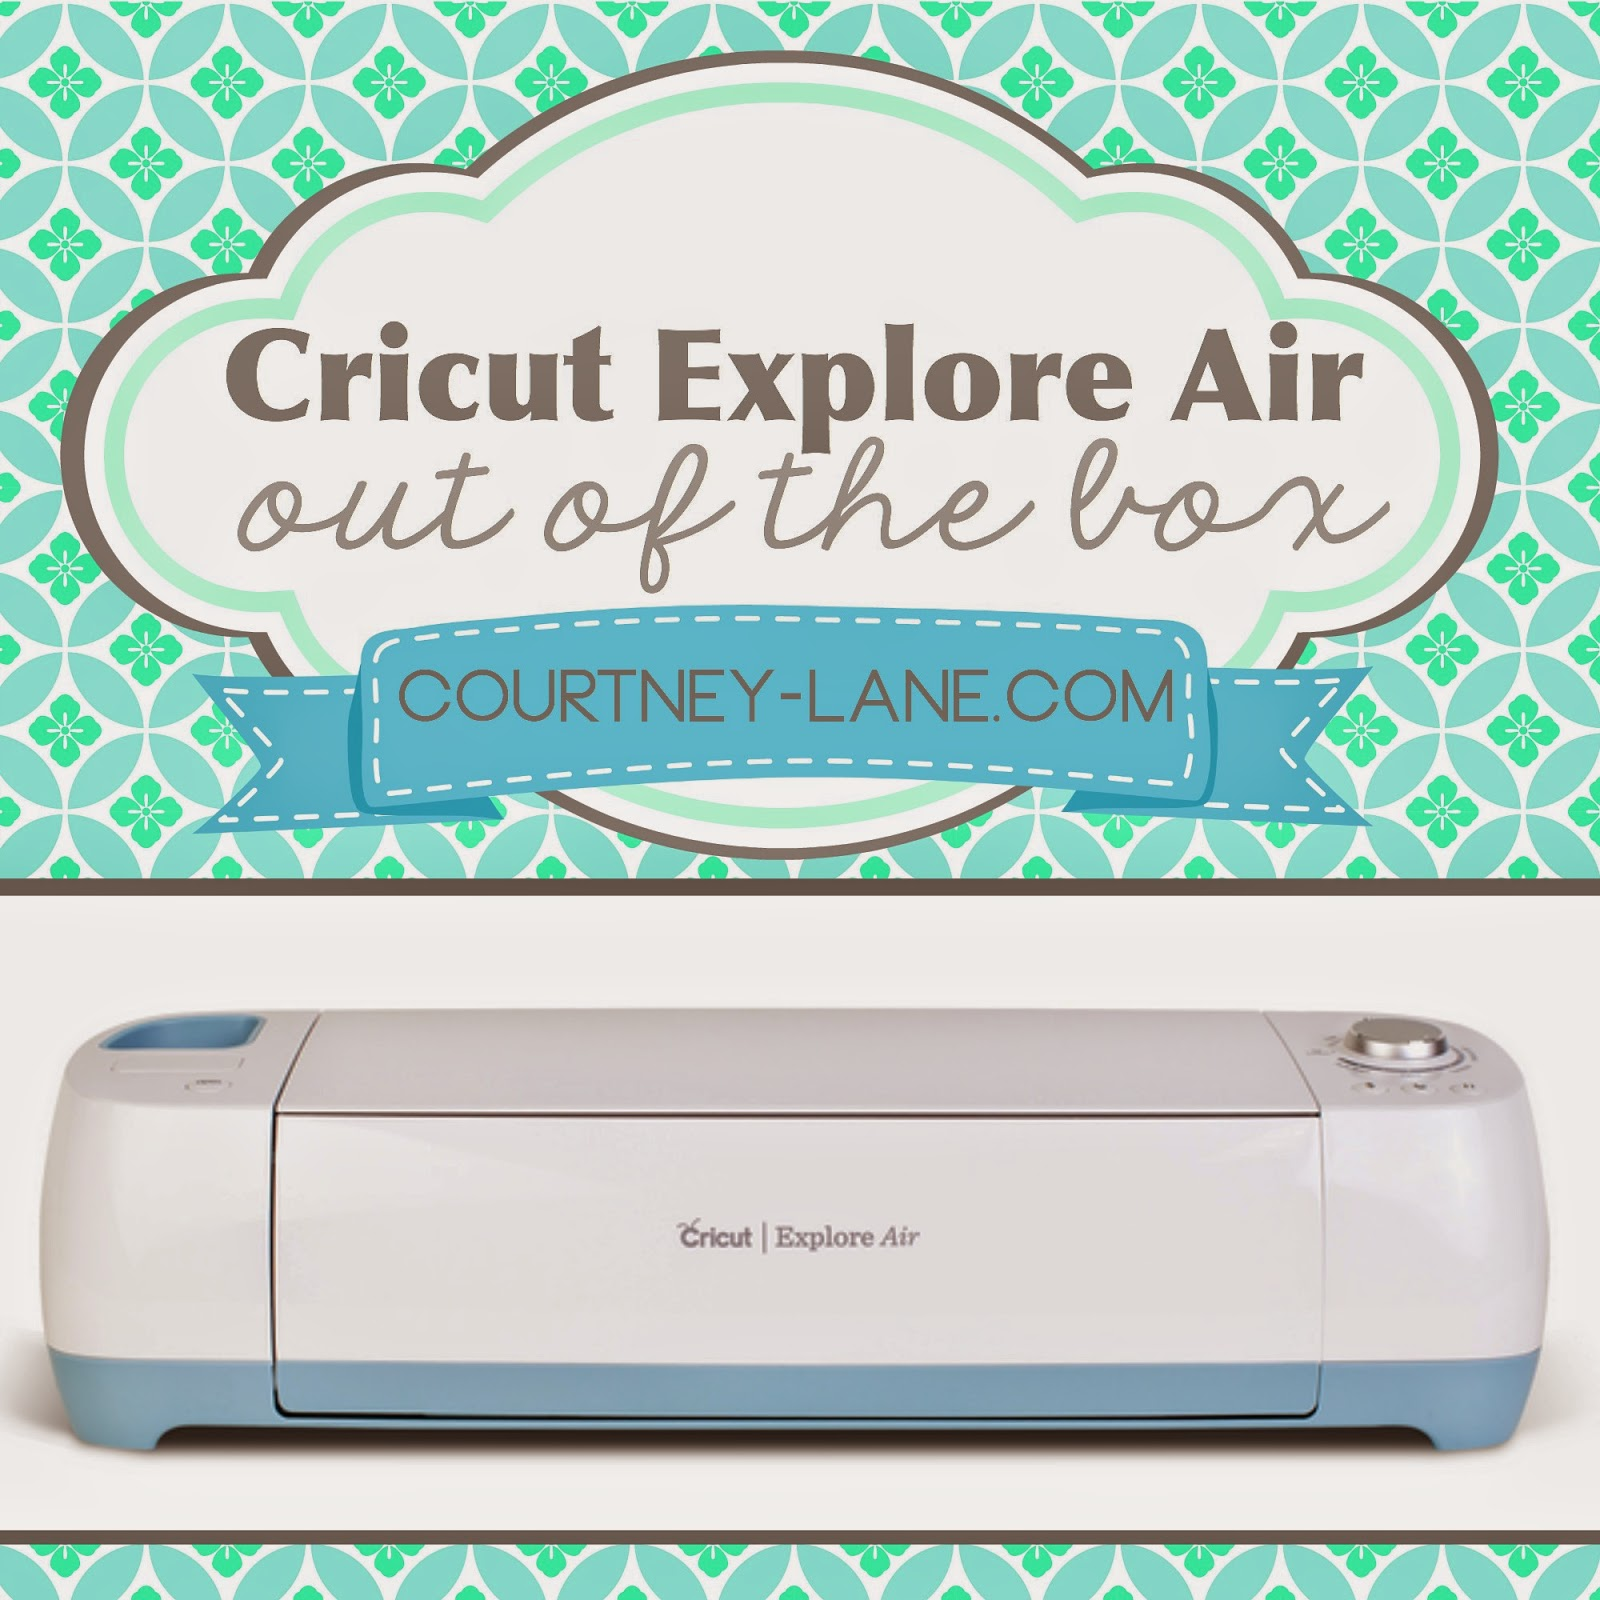 Cricut Explore Air out of the box